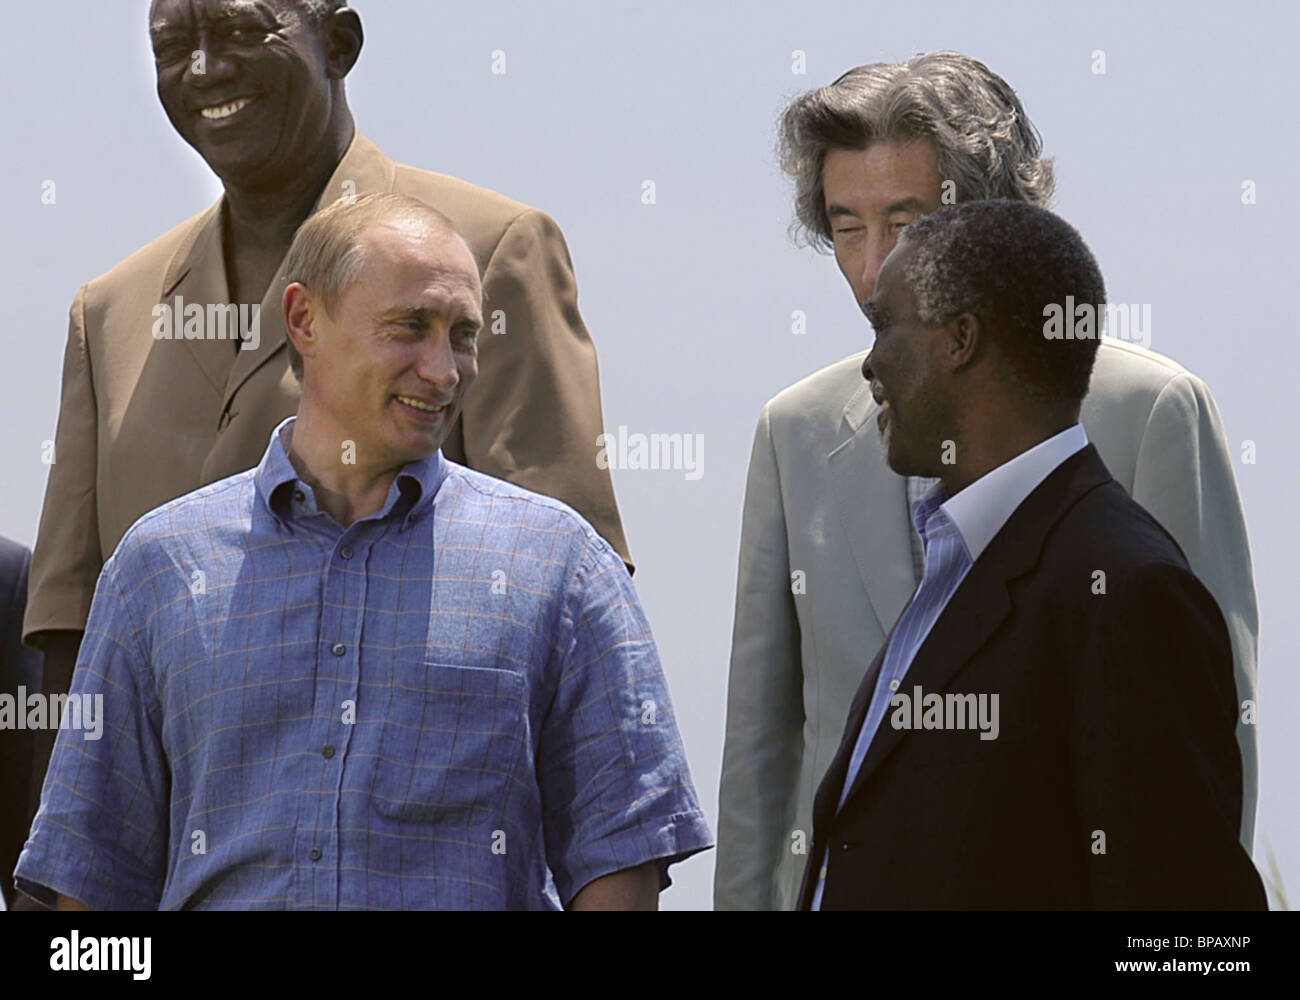 G8 summit participants take a group photo with African nation leaders - Stock Image